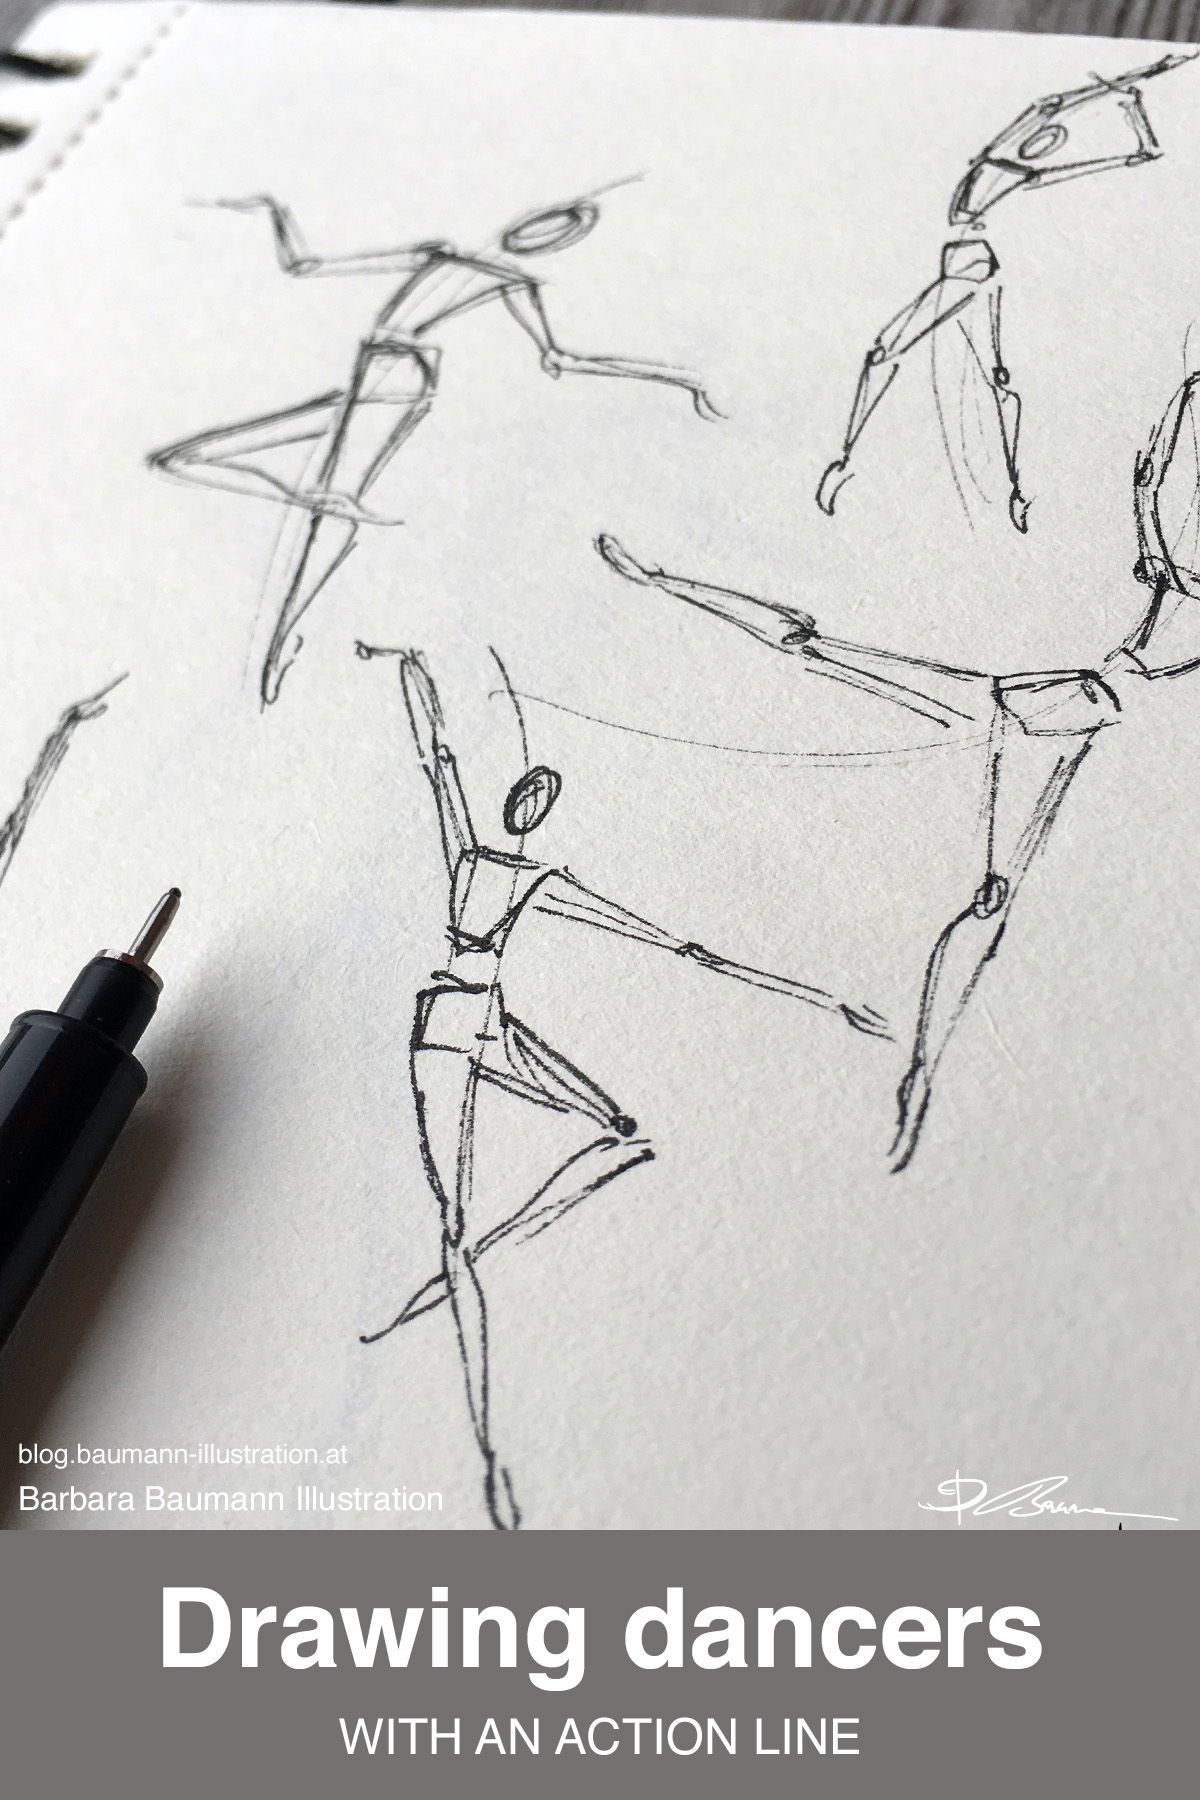 Elegant Dancers Drawn With Basic Shapes And An Action Line In Order To Create Movement And Strong Dynamic Dancer Drawing Gesture Drawing Poses Movement Drawing